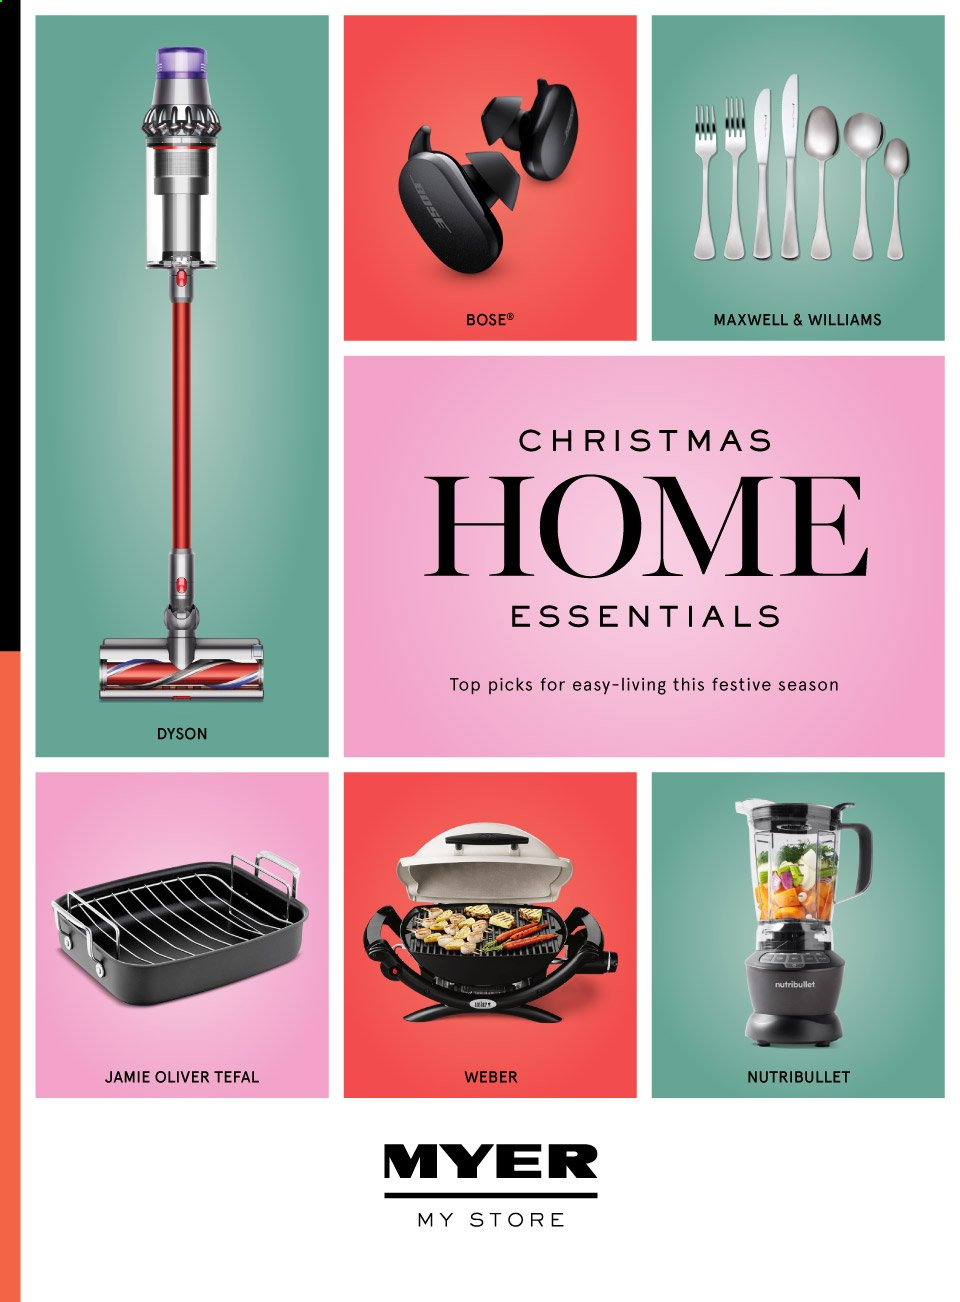 Myer Catalogue - Sales products - BOSE, Tefal, weber, NutriBullet, Dyson, essentials. Page 1.